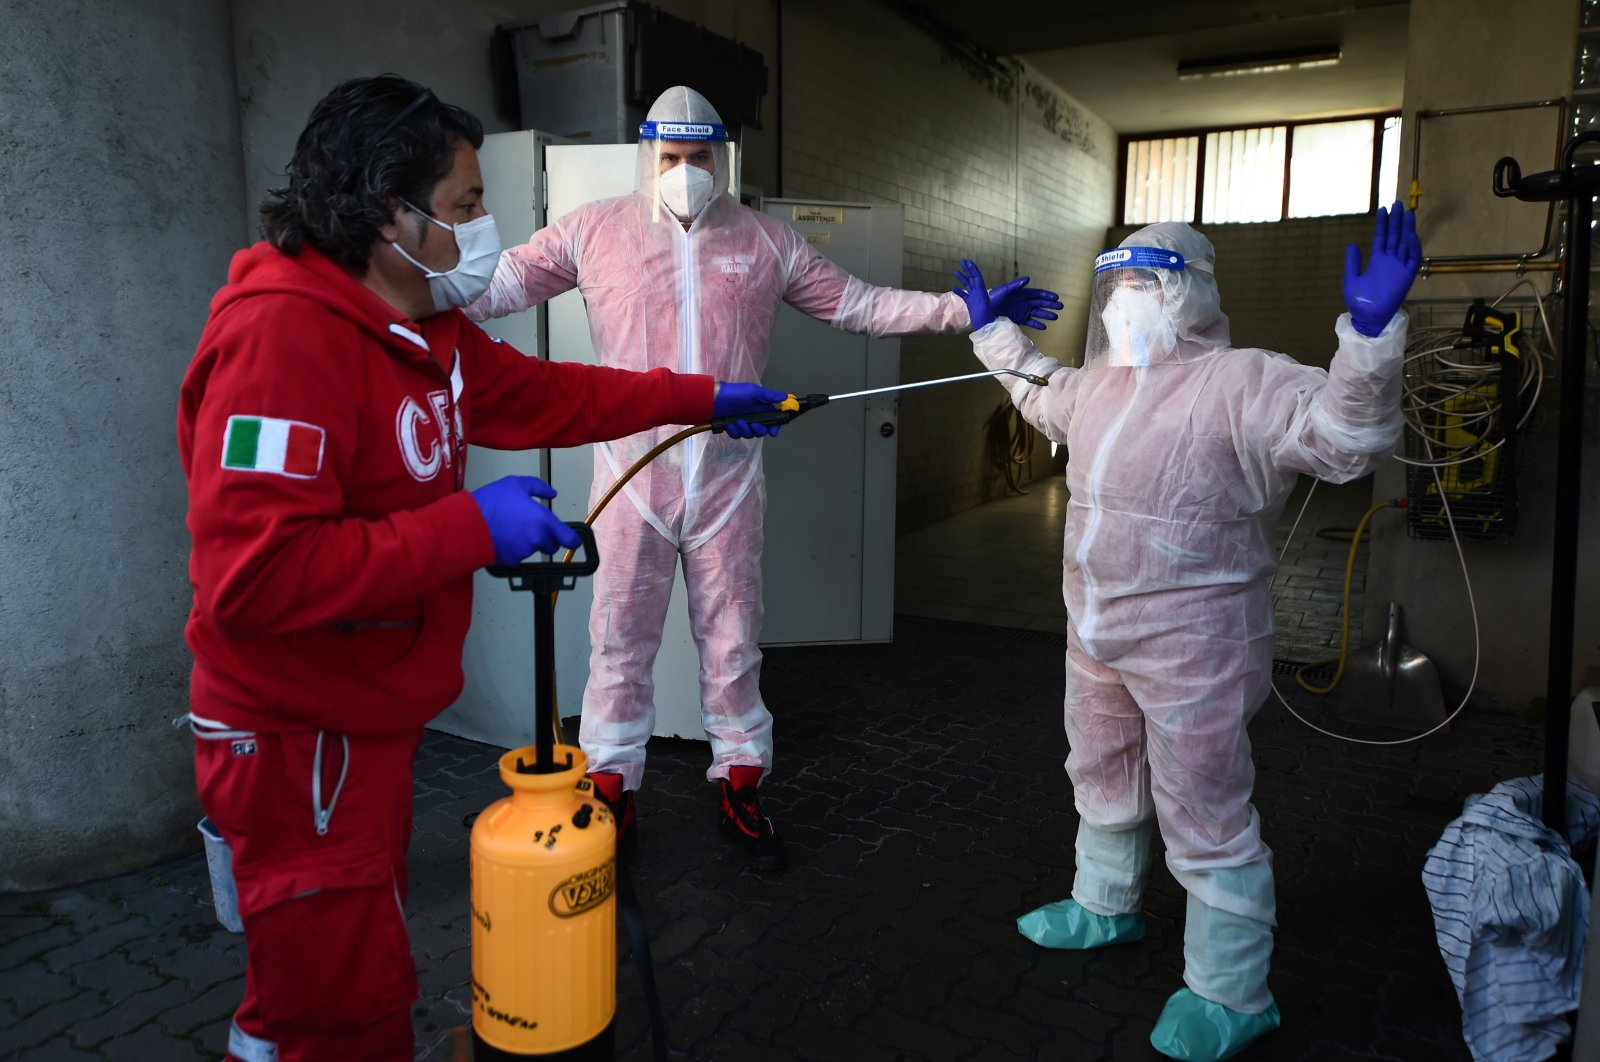 Red Cross volunteer sprays disinfectant on colleagues returning from an intervention on a patient suffering from the coronavirus on Easter Sunday as Italy remains on lockdown, in Turin, Italy, April 12, 2020. (Reuters Photo)